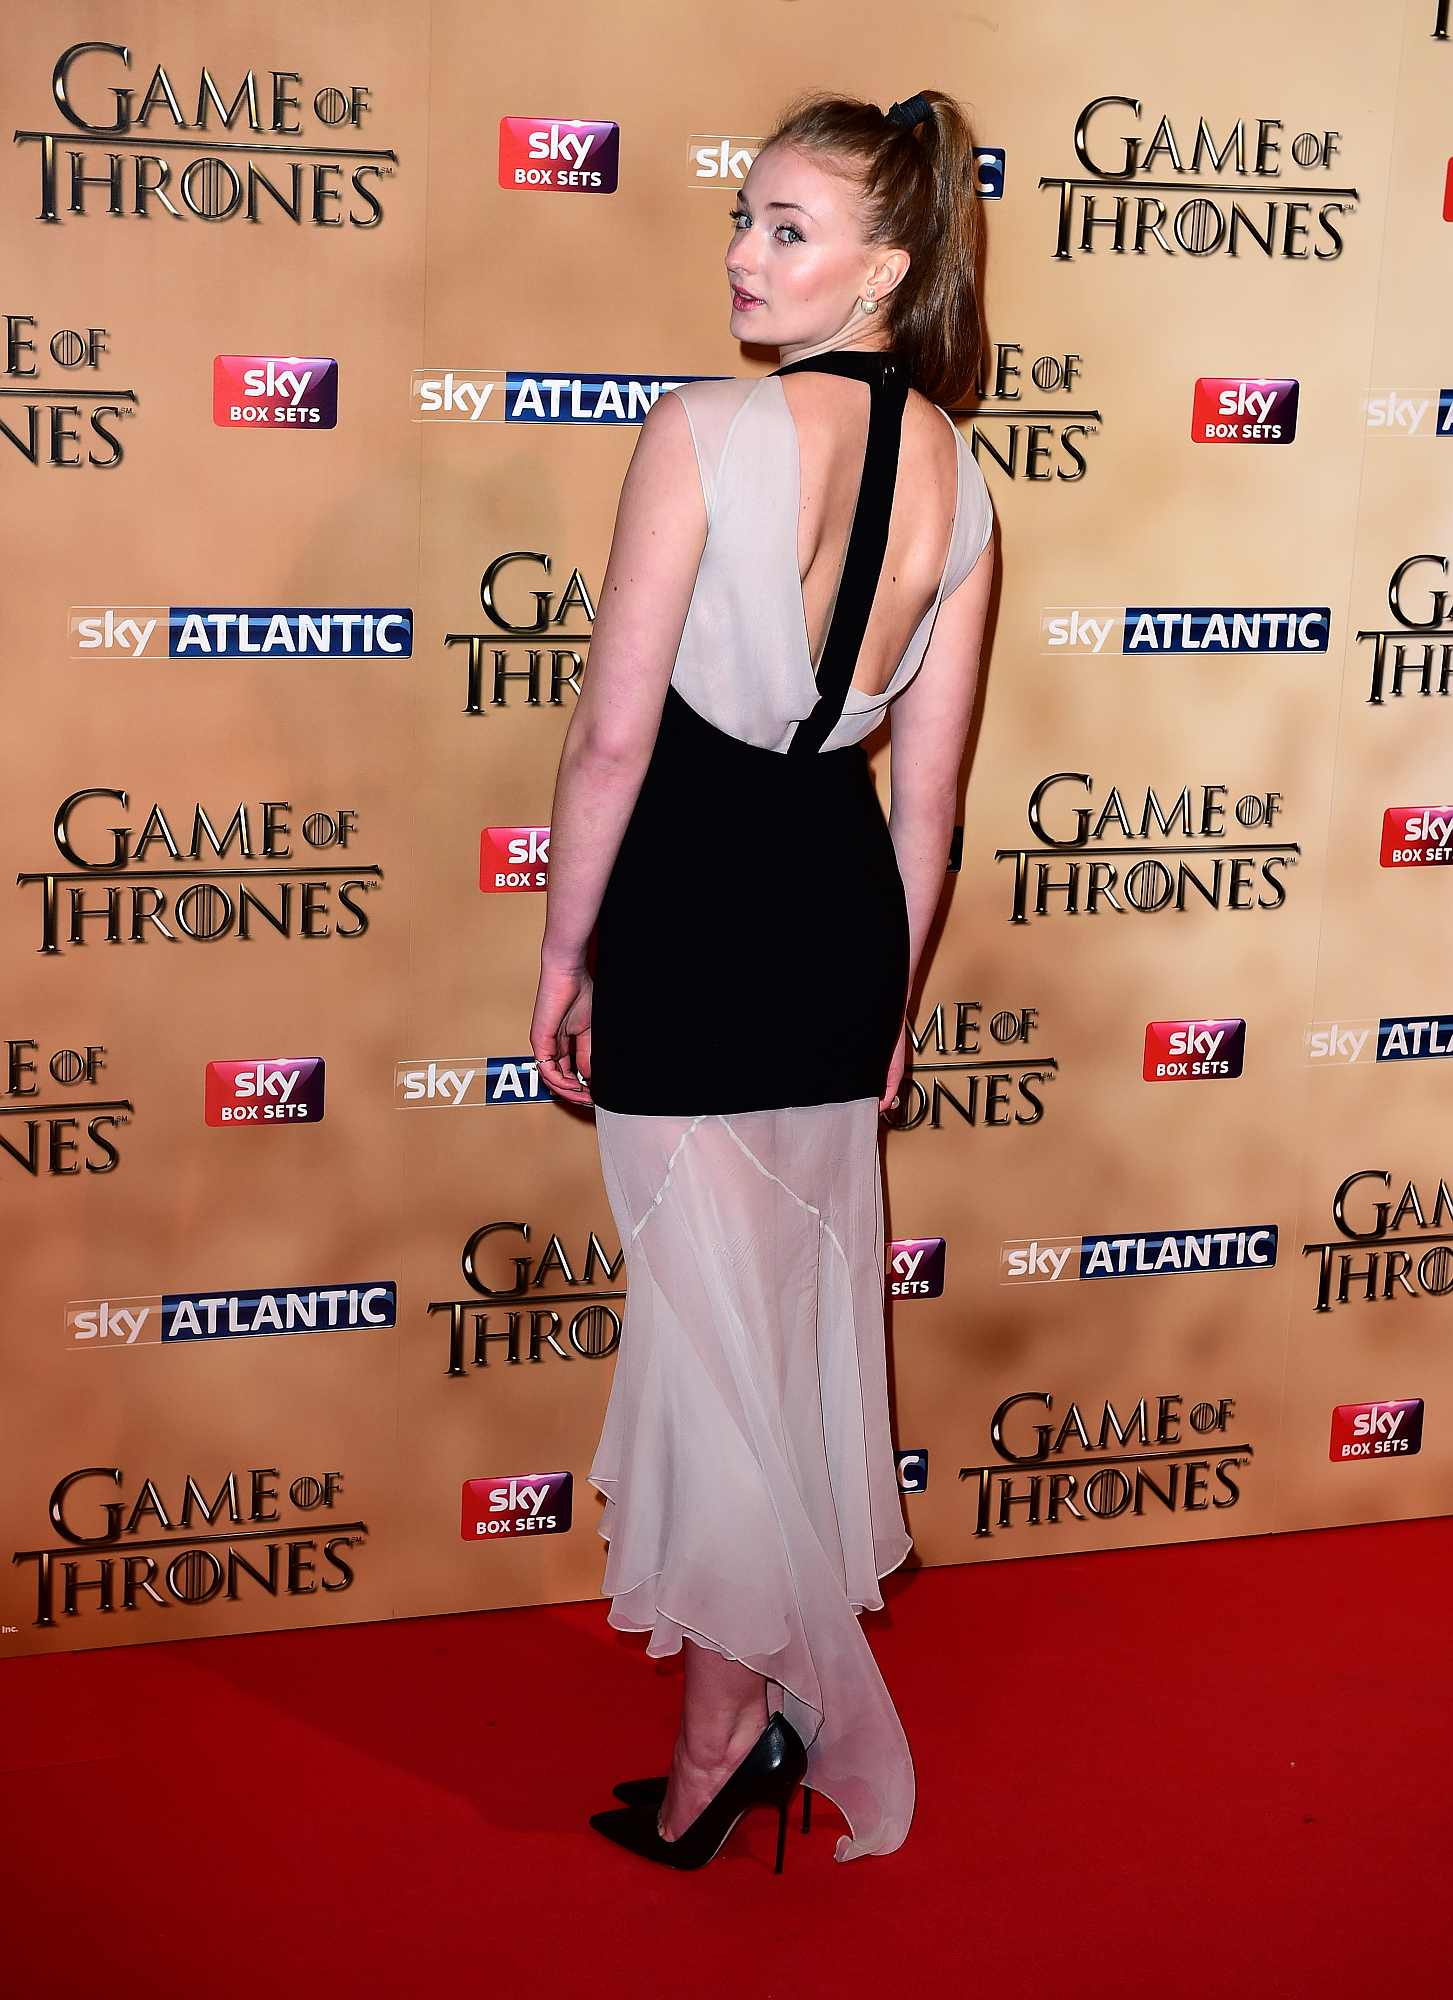 Sophie Turner attending the world premiere of the fifth series of Game of Thrones at the Tower of London